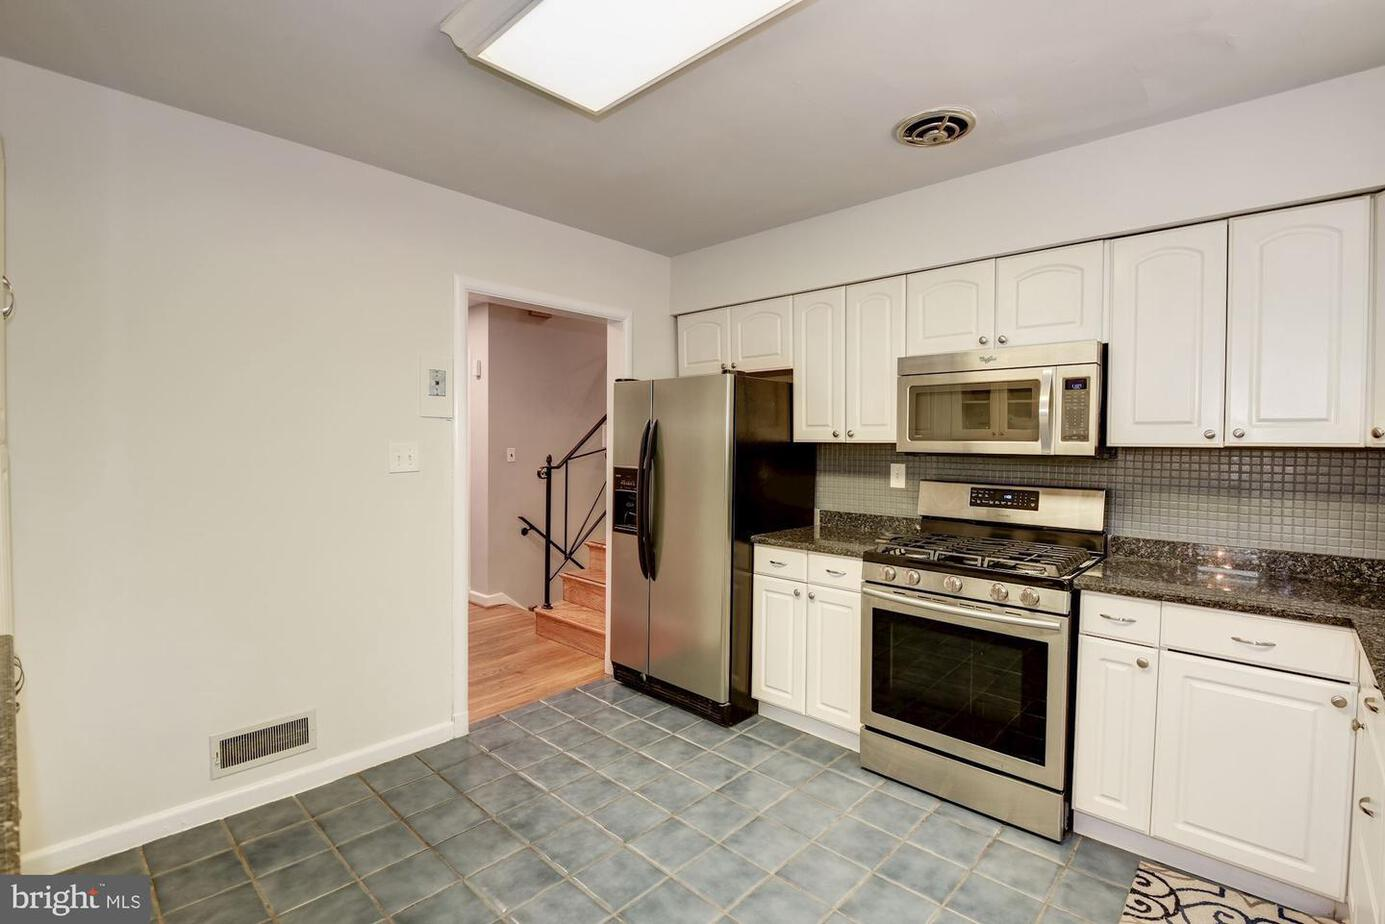 3519 Glenmoor Drive, Chevy Chase, MD 20815 Flowing Gourmet Kitchen